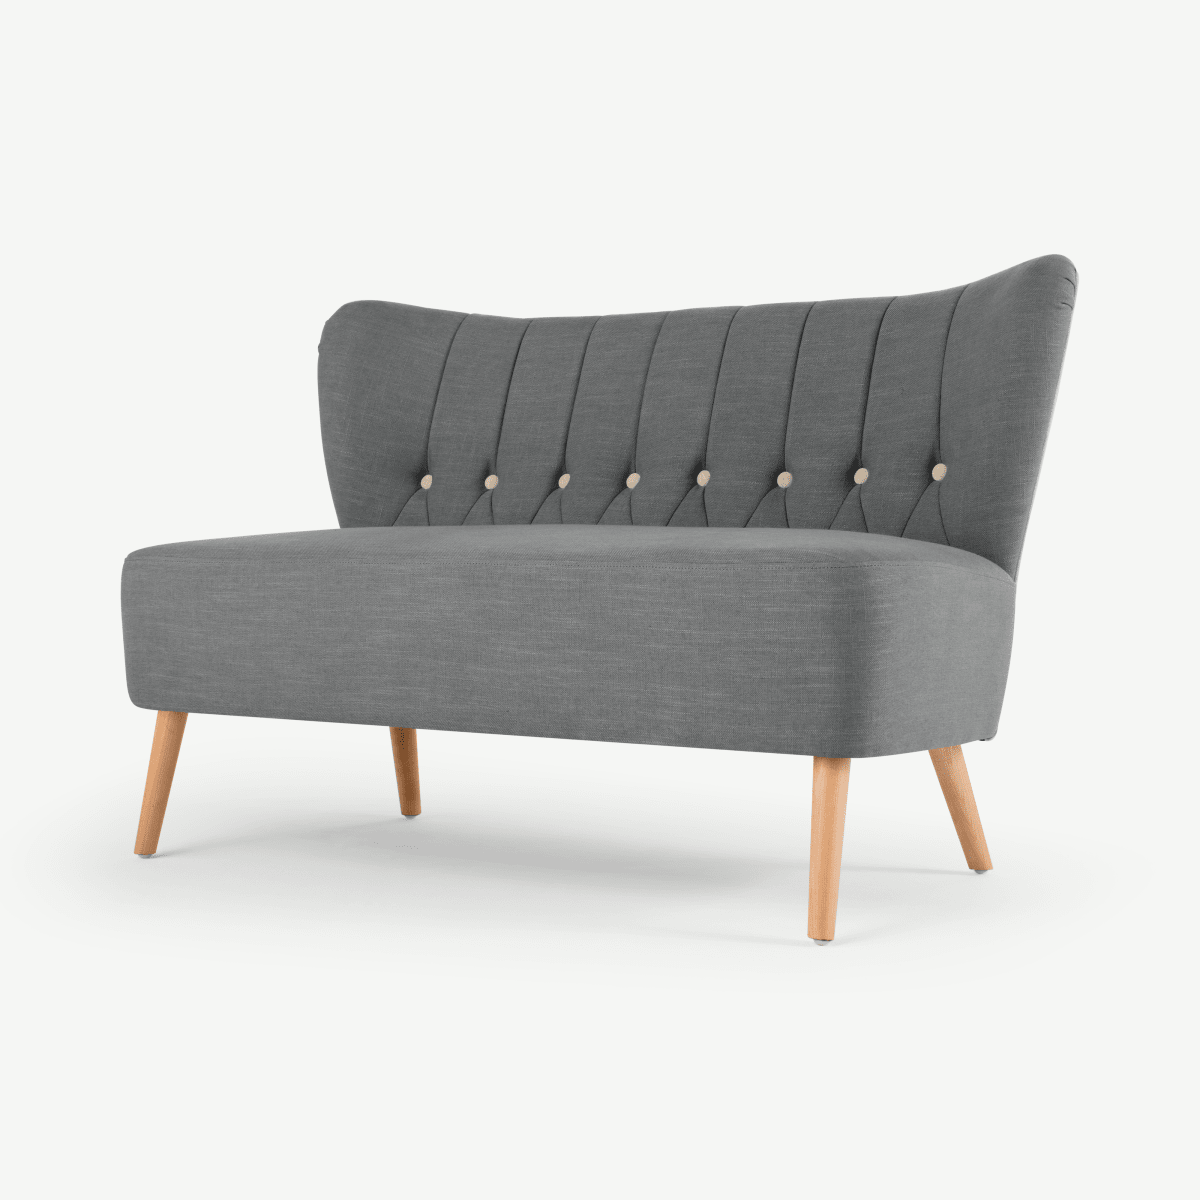 Charley 2 Seater Sofa, Graphite Grey